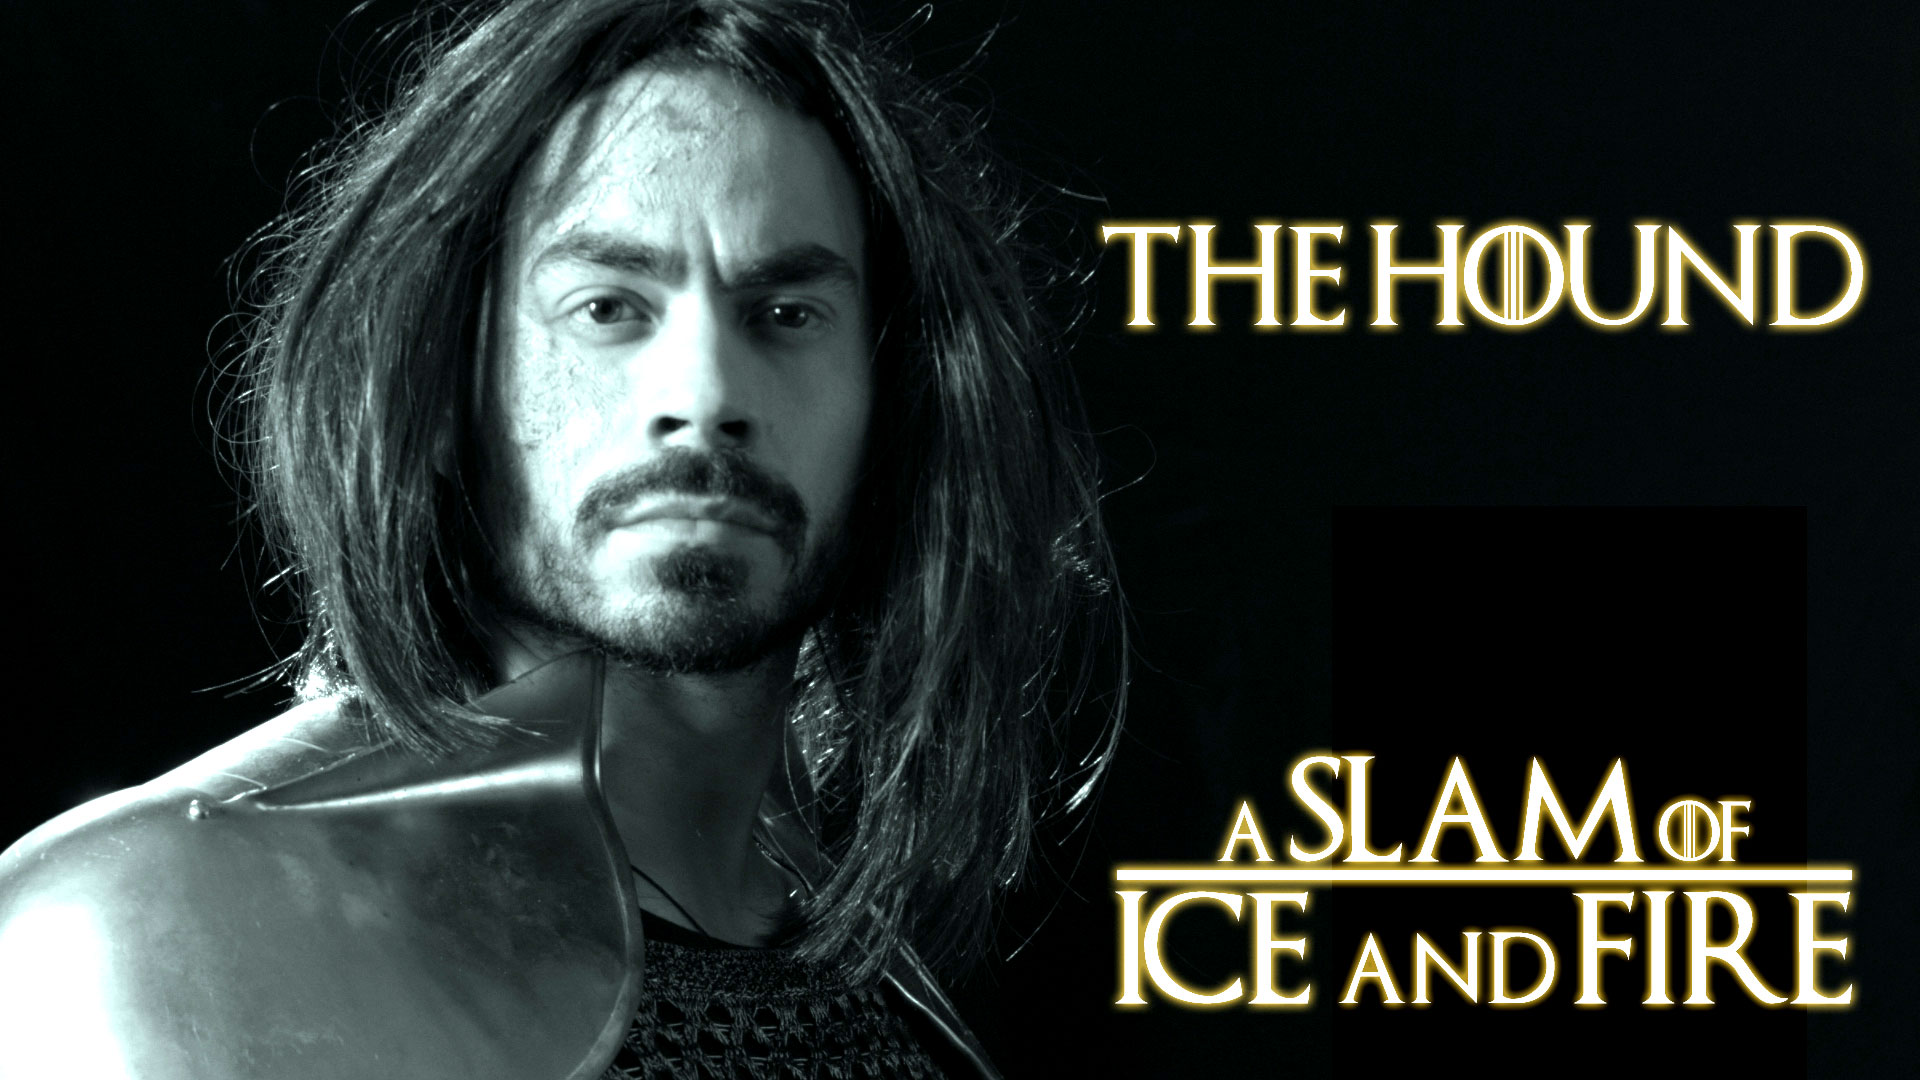 The Hound – A Slam of Ice and Fire || Spoken Word